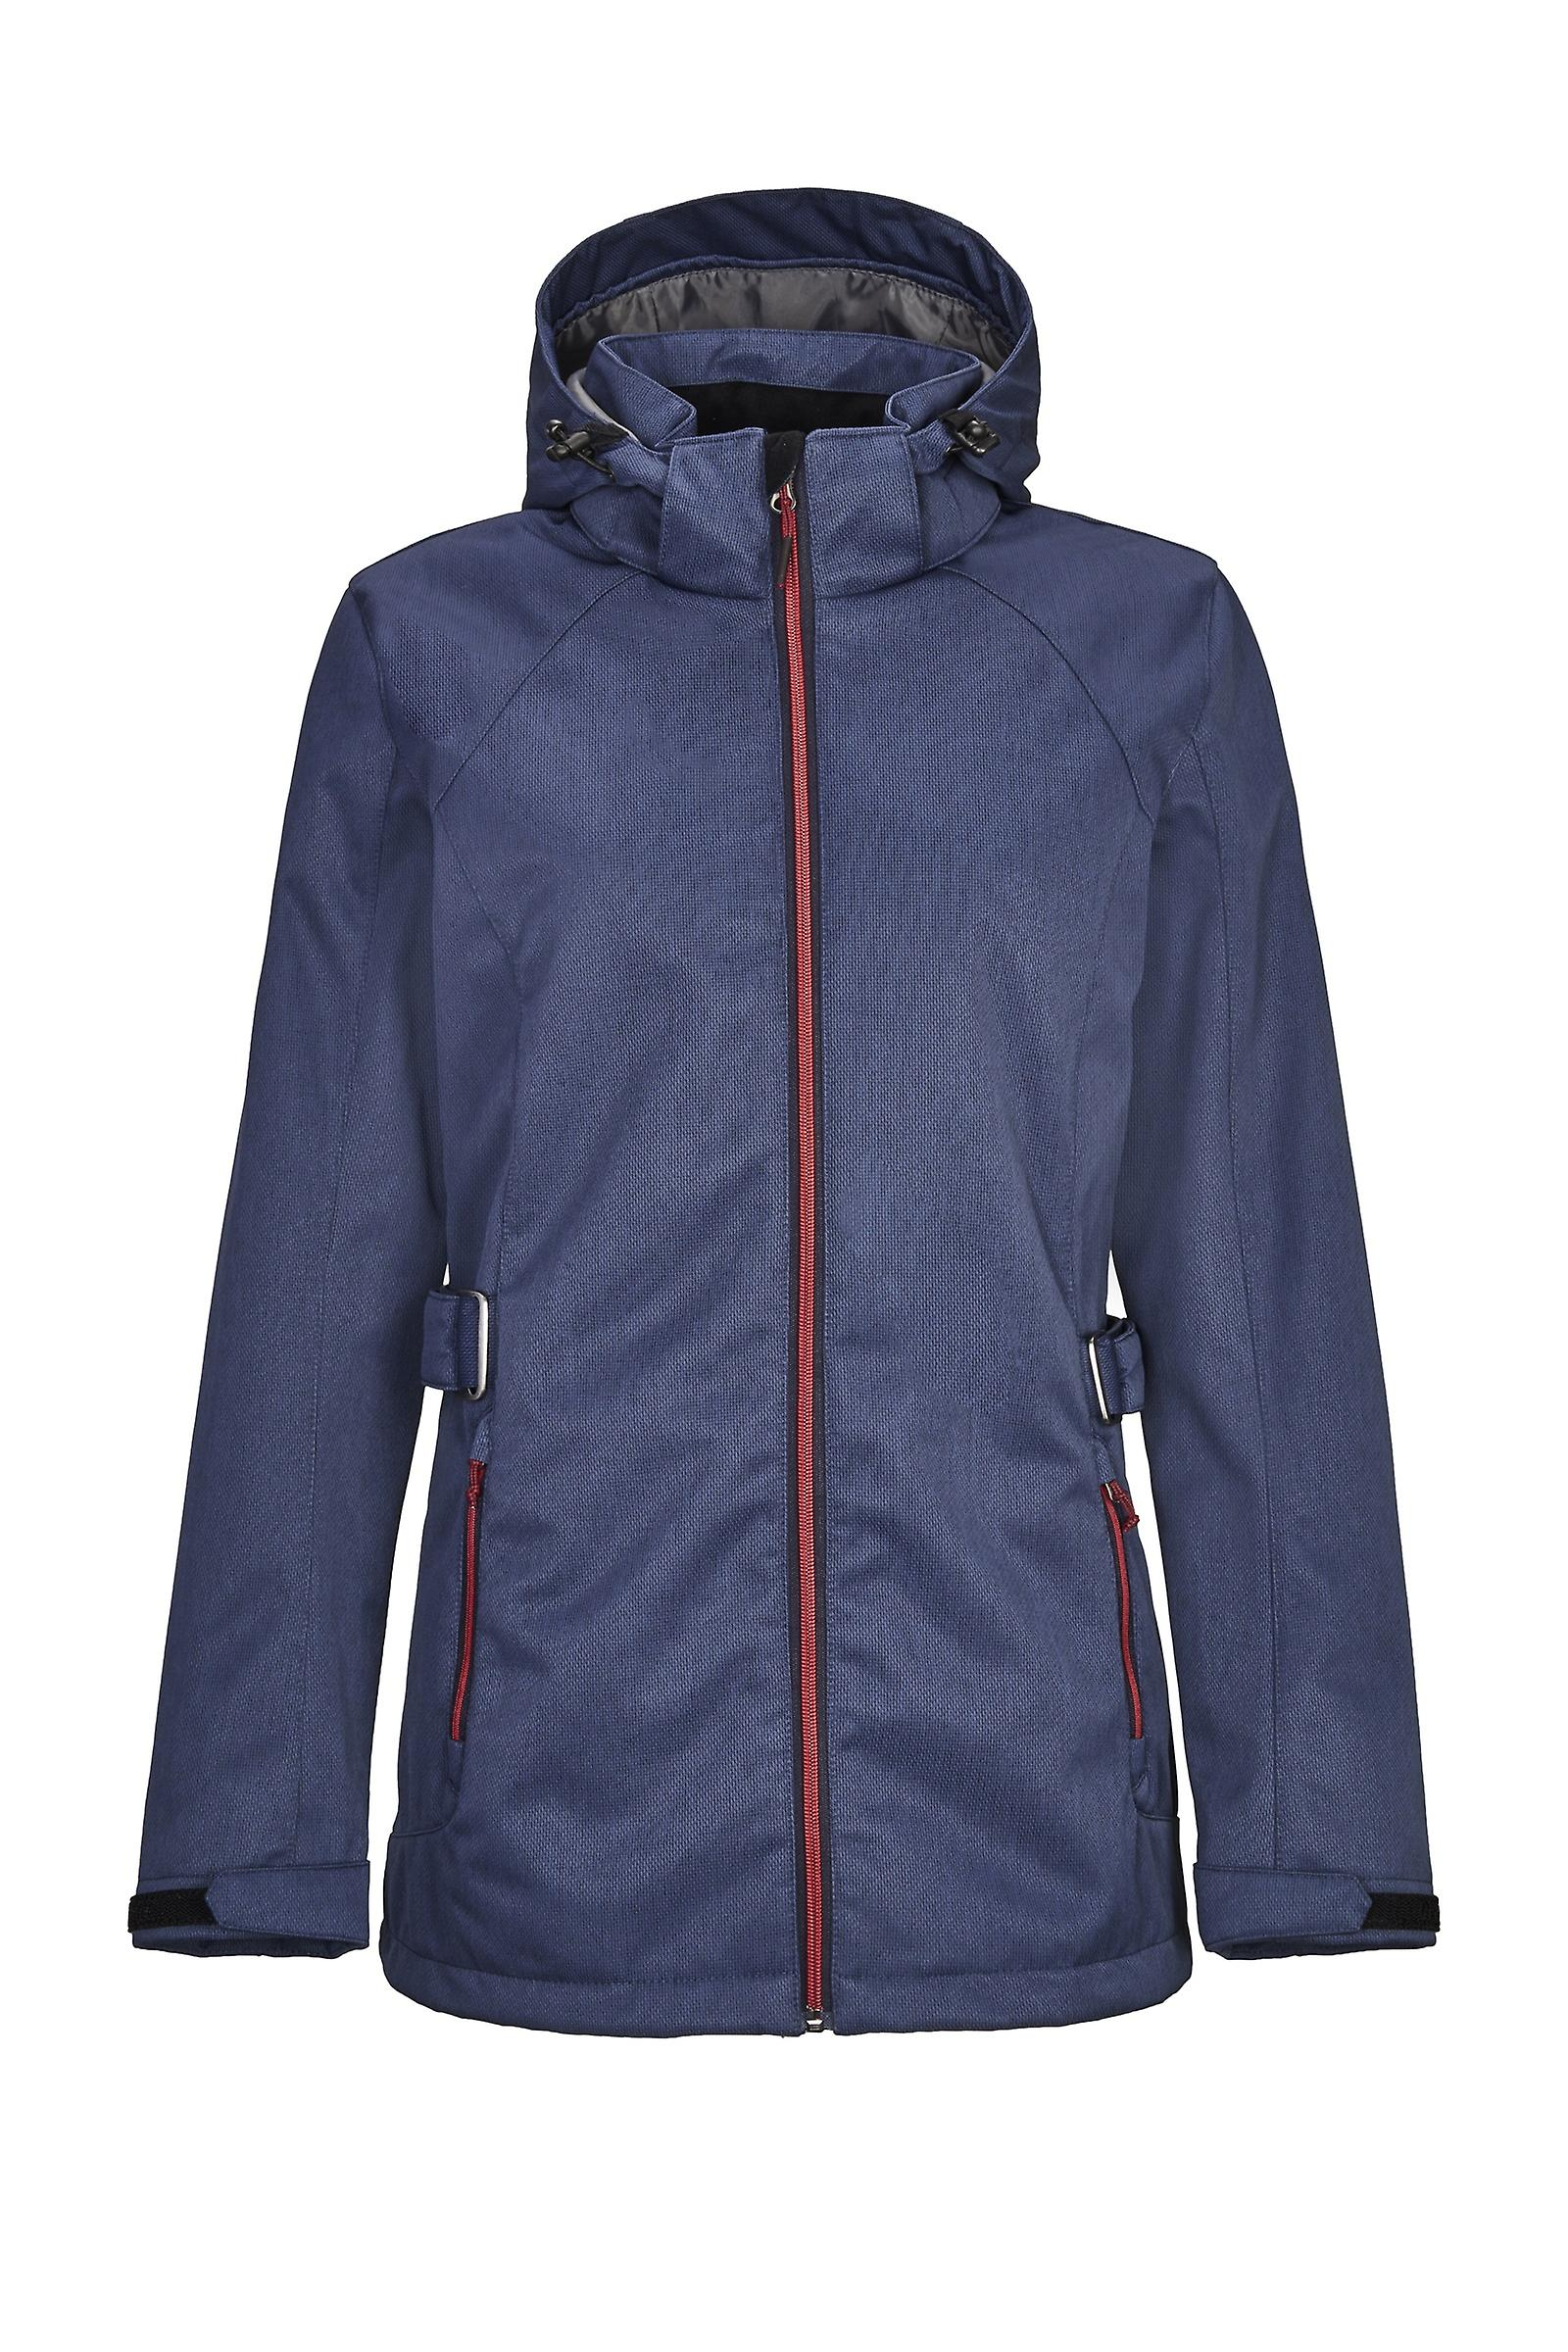 killtec Women ' s softshell jakke Farenia